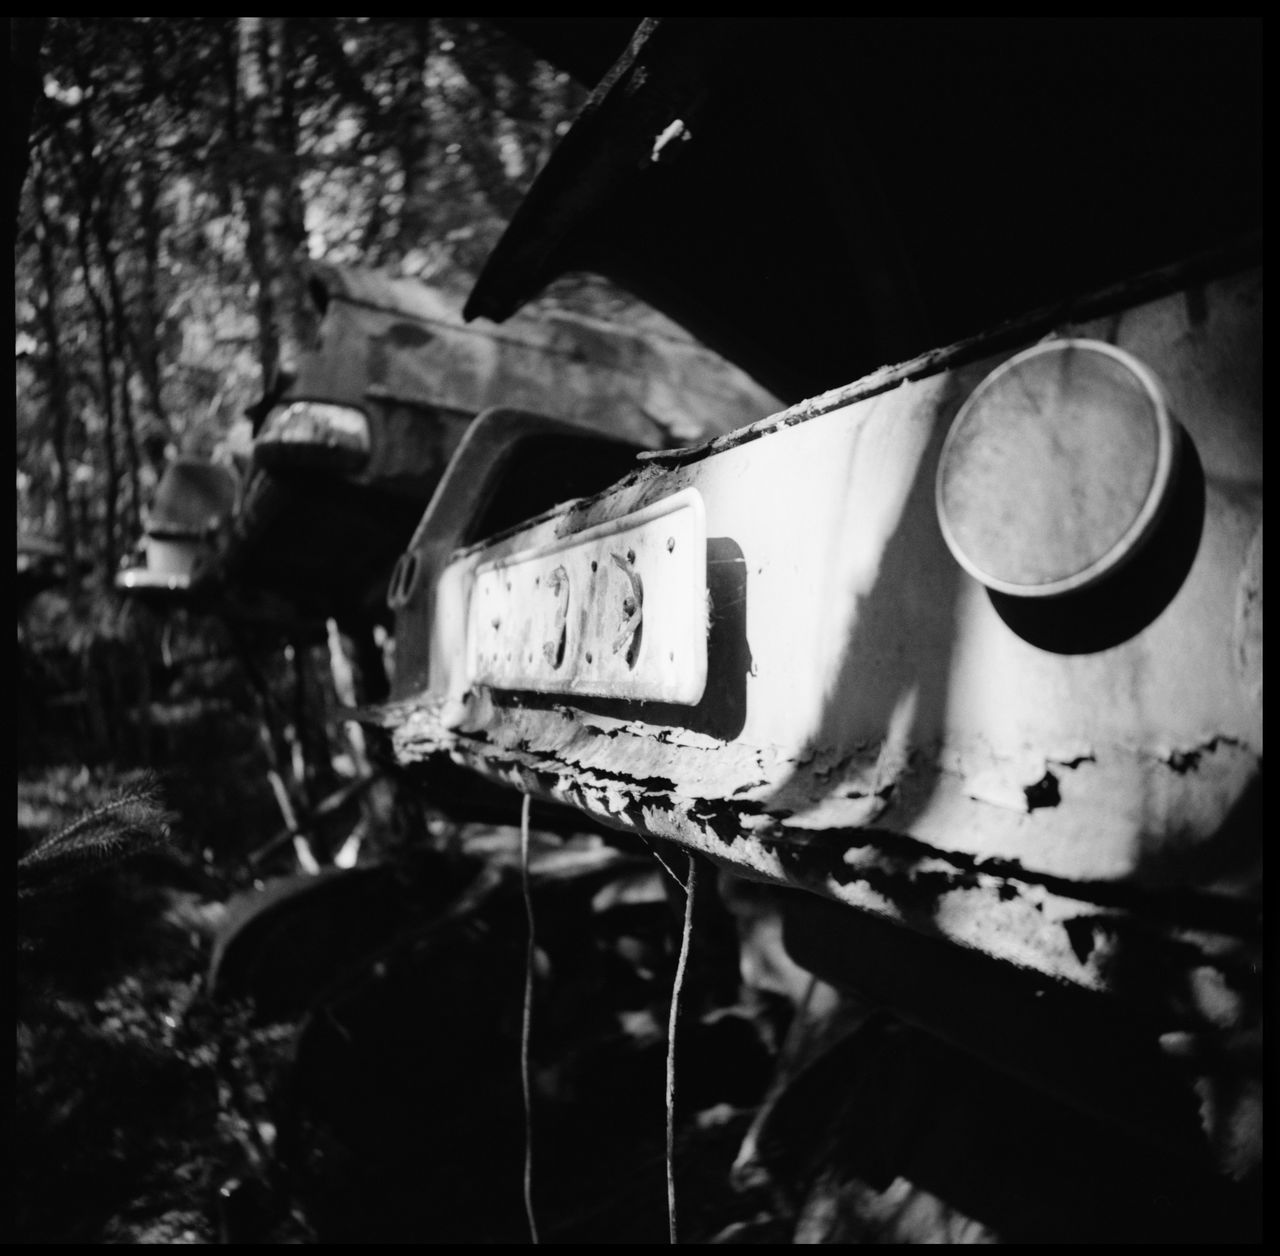 The eerie beauty of the car cemetery of Båstnäs Abandonded Car Cemetery Analogue Photography Black And White Båstnäs Båstnäs Car Cemetery Båstnäs Töcksfors Car Cemetery Cars Cars And Art Cars And Nature Forrest Leaves Life Moss No People Outdoors Scandinavia Schrottplatz Scrap Metal Summer In Sweden Sweden Technology Travel Vintage Vintage Cars